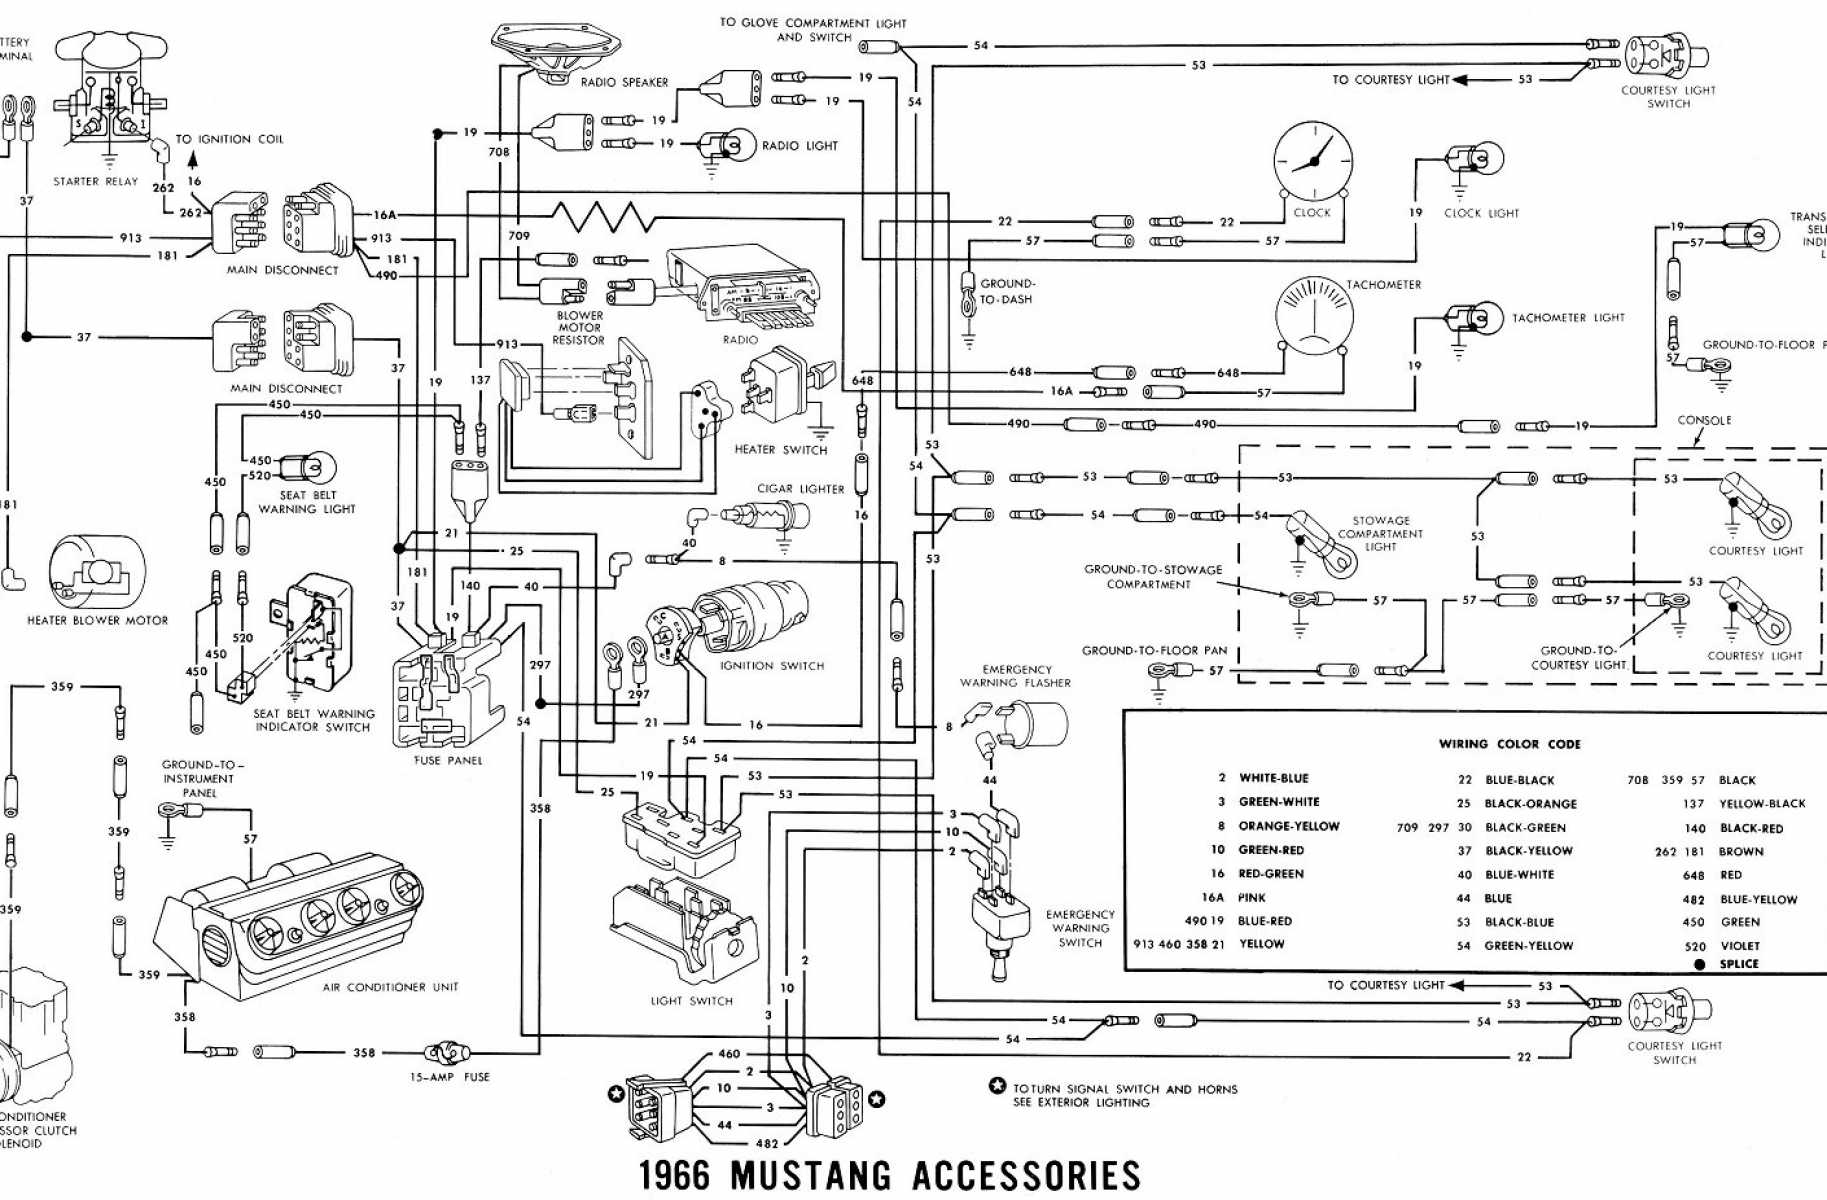 hight resolution of boss snow plow wire diagram guide about wiring diagram 2002 chevy boss snow plow wiring